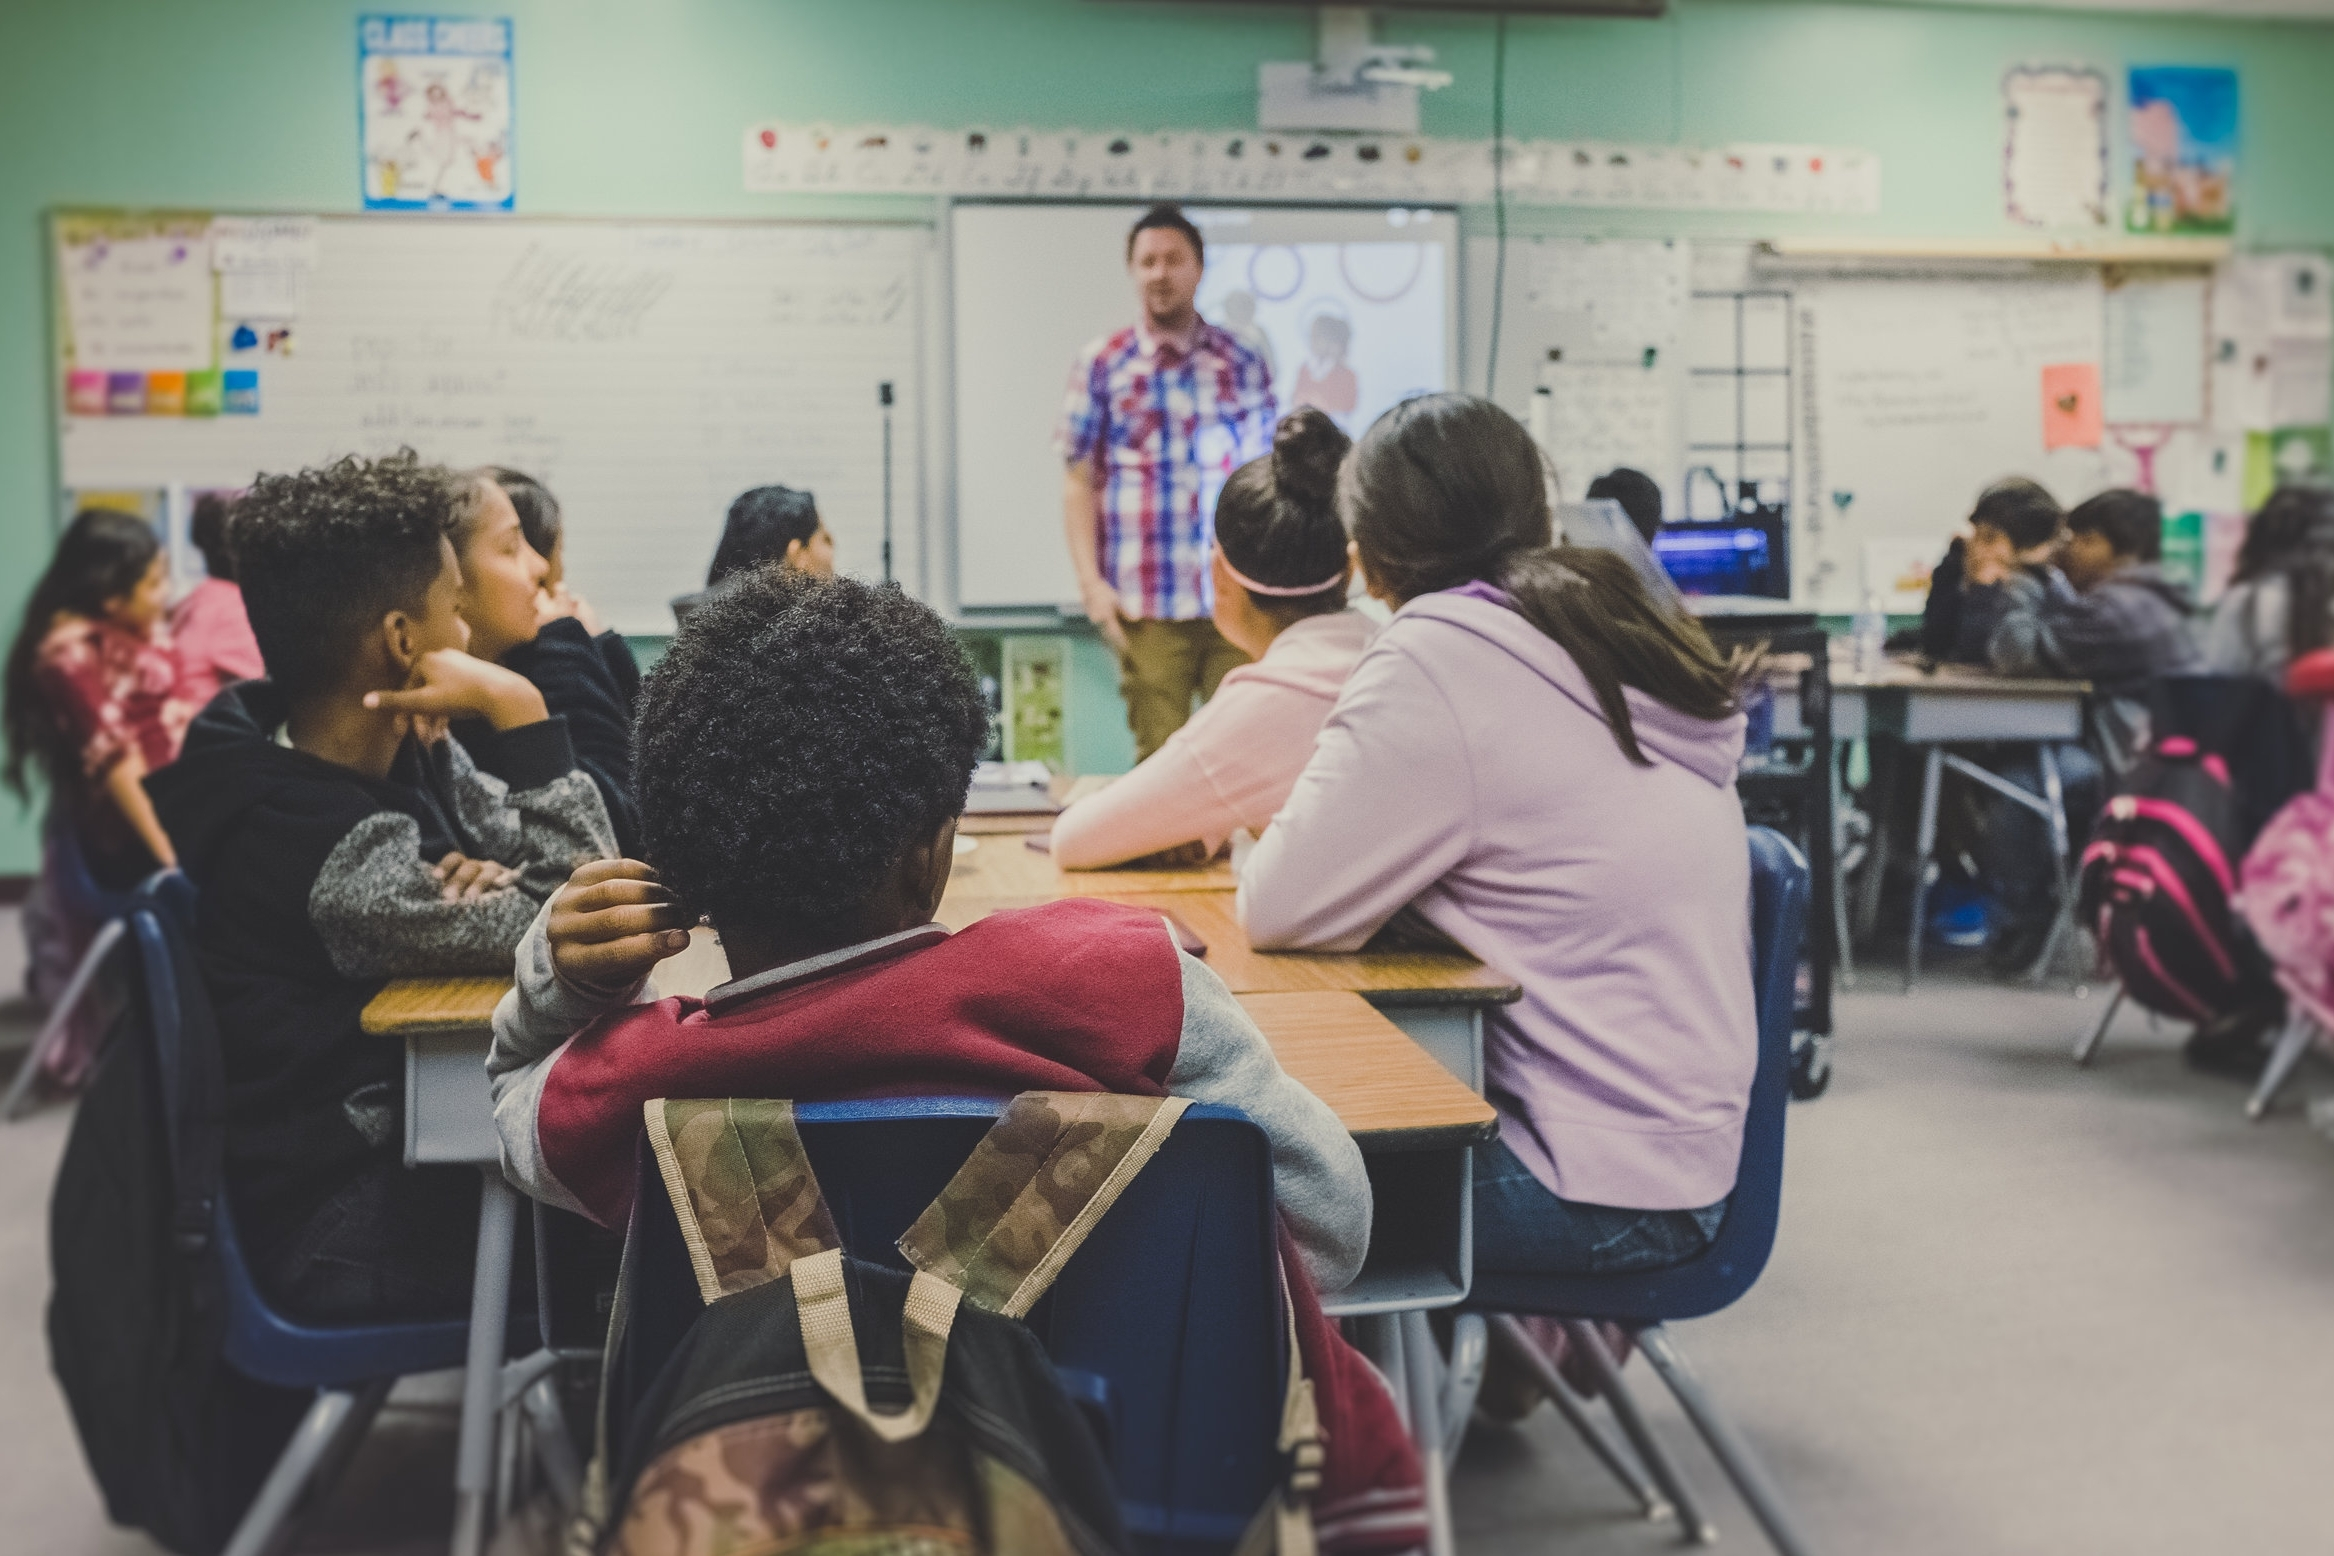 Schools - Learn more about the public school system across the city